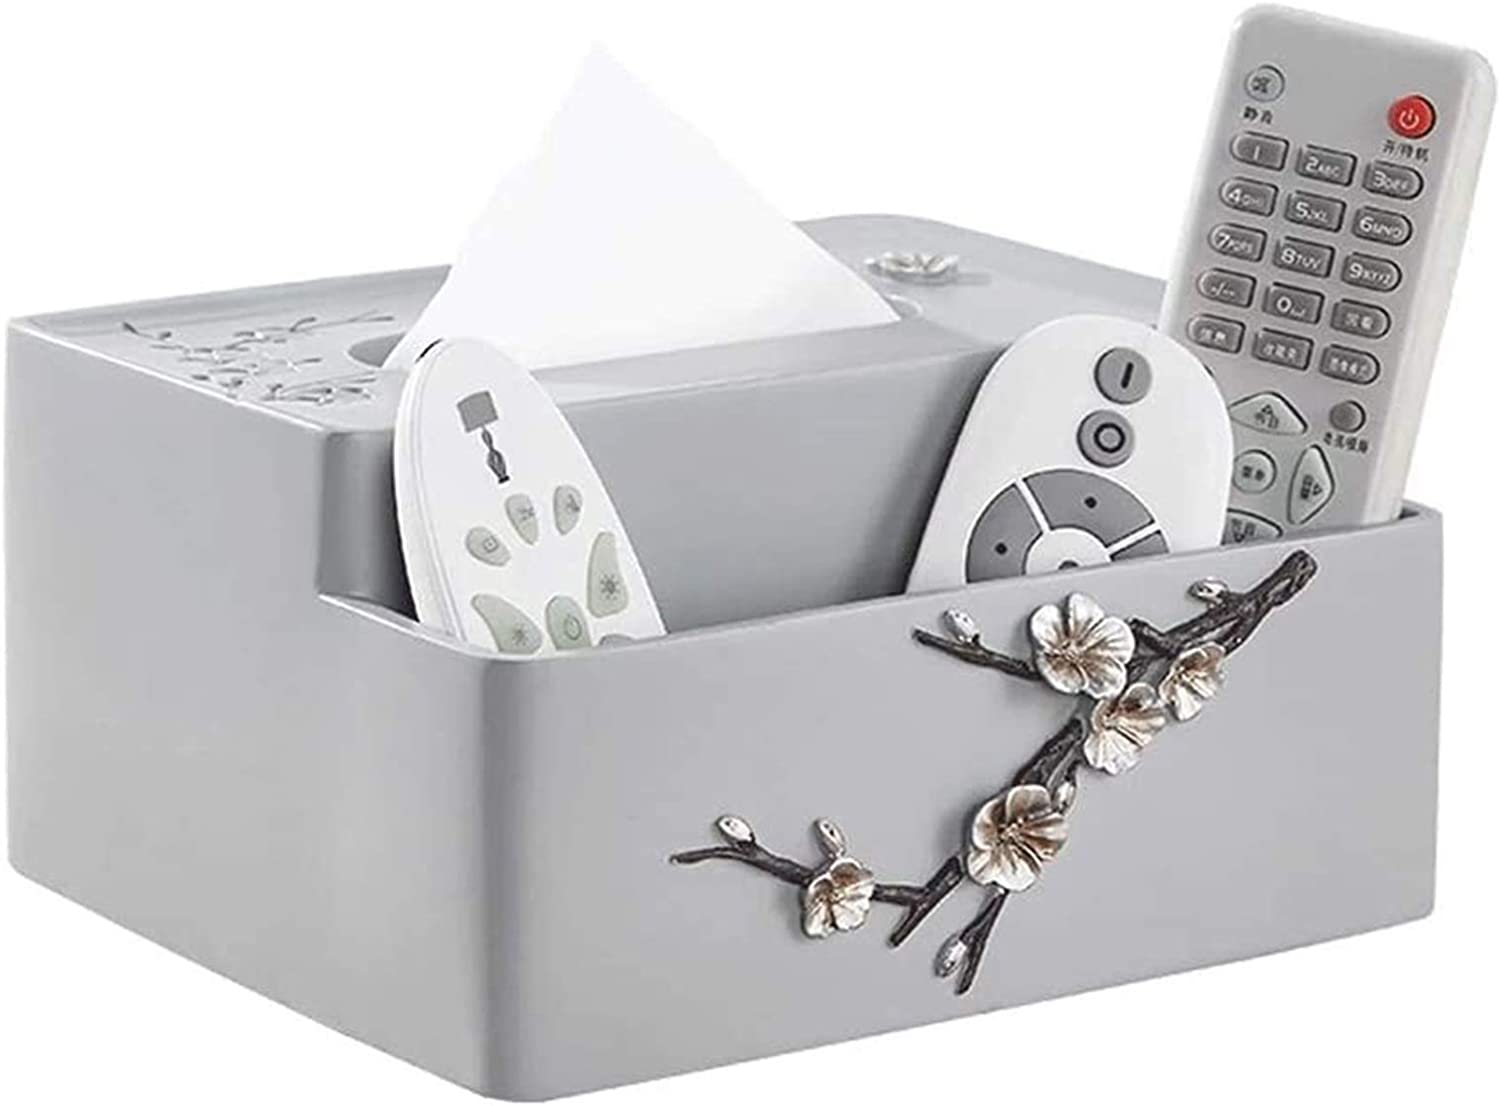 HomeDecoration Sale price Tissue Box Multi-Function Cover Limited Special Price